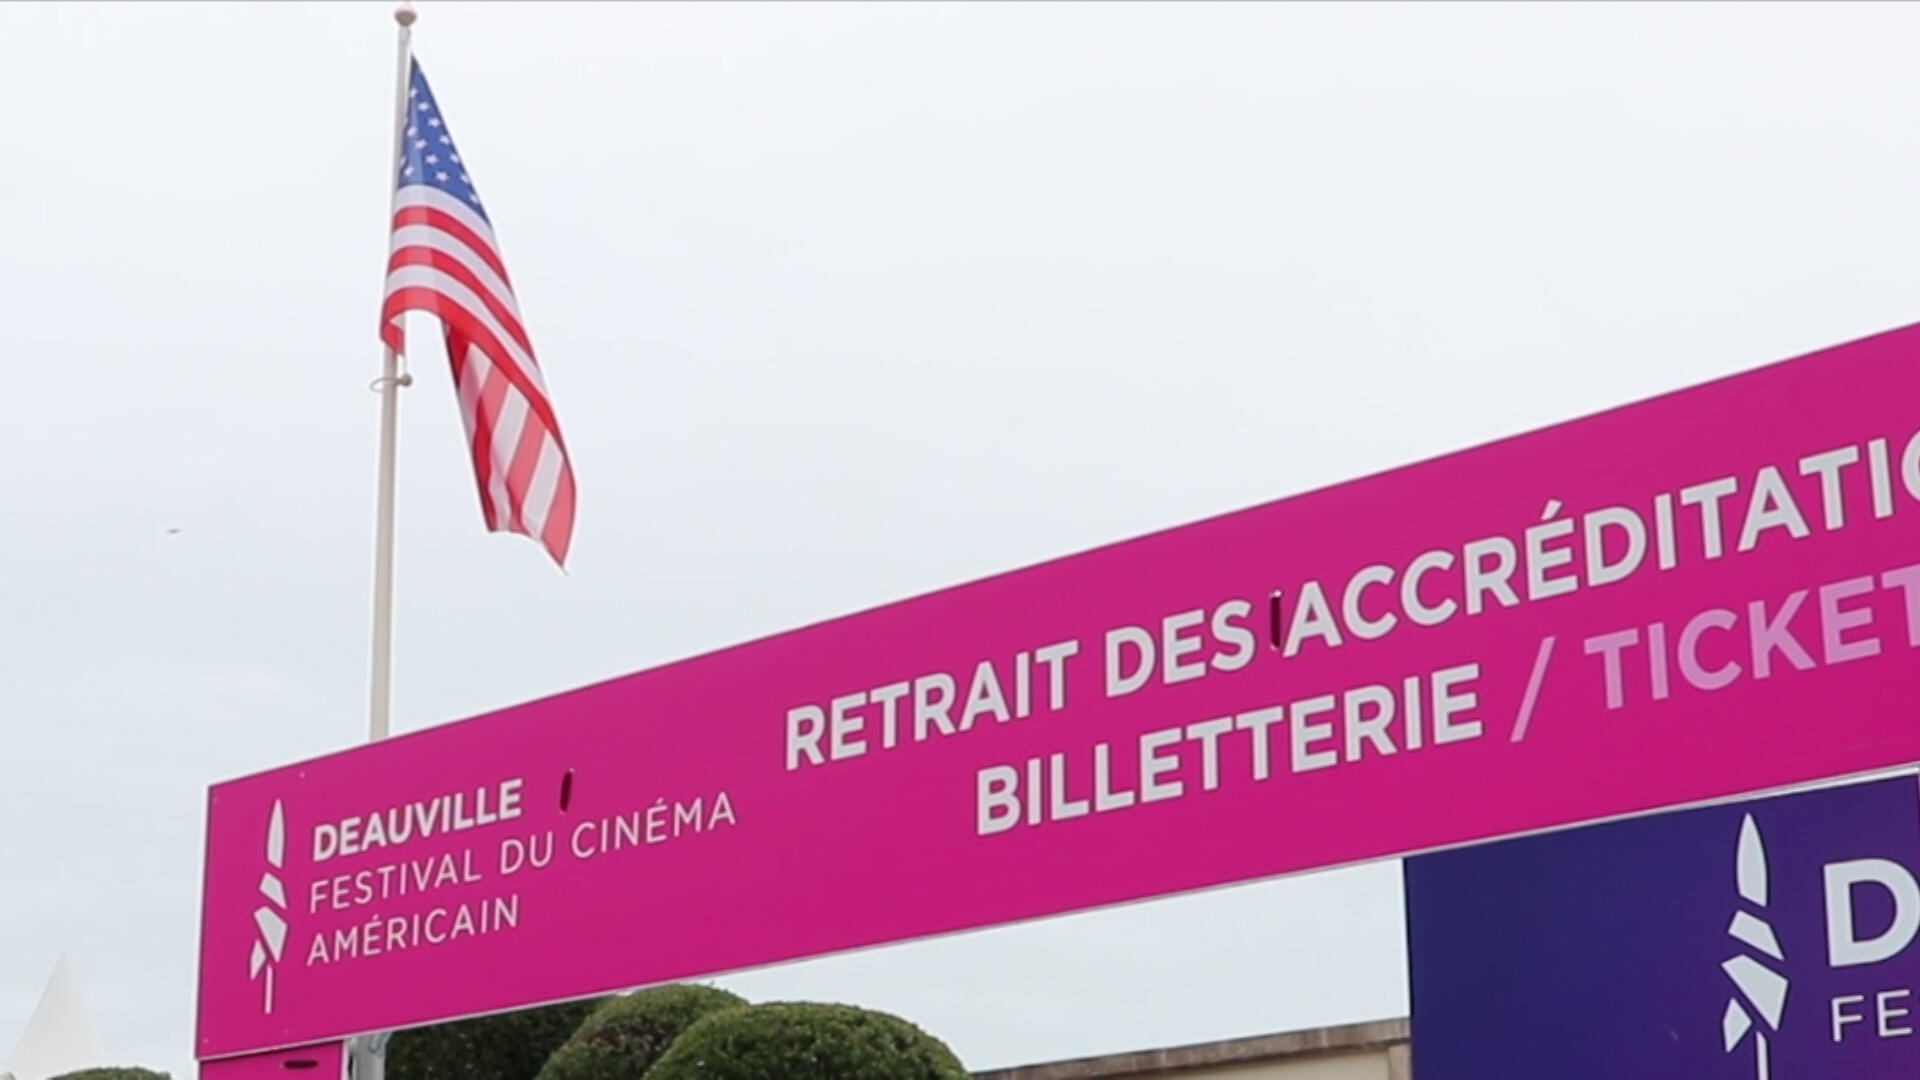 Few Americans have been able to travel to this year's Deauville American Film Festival amid the COvid-19 pandemic.